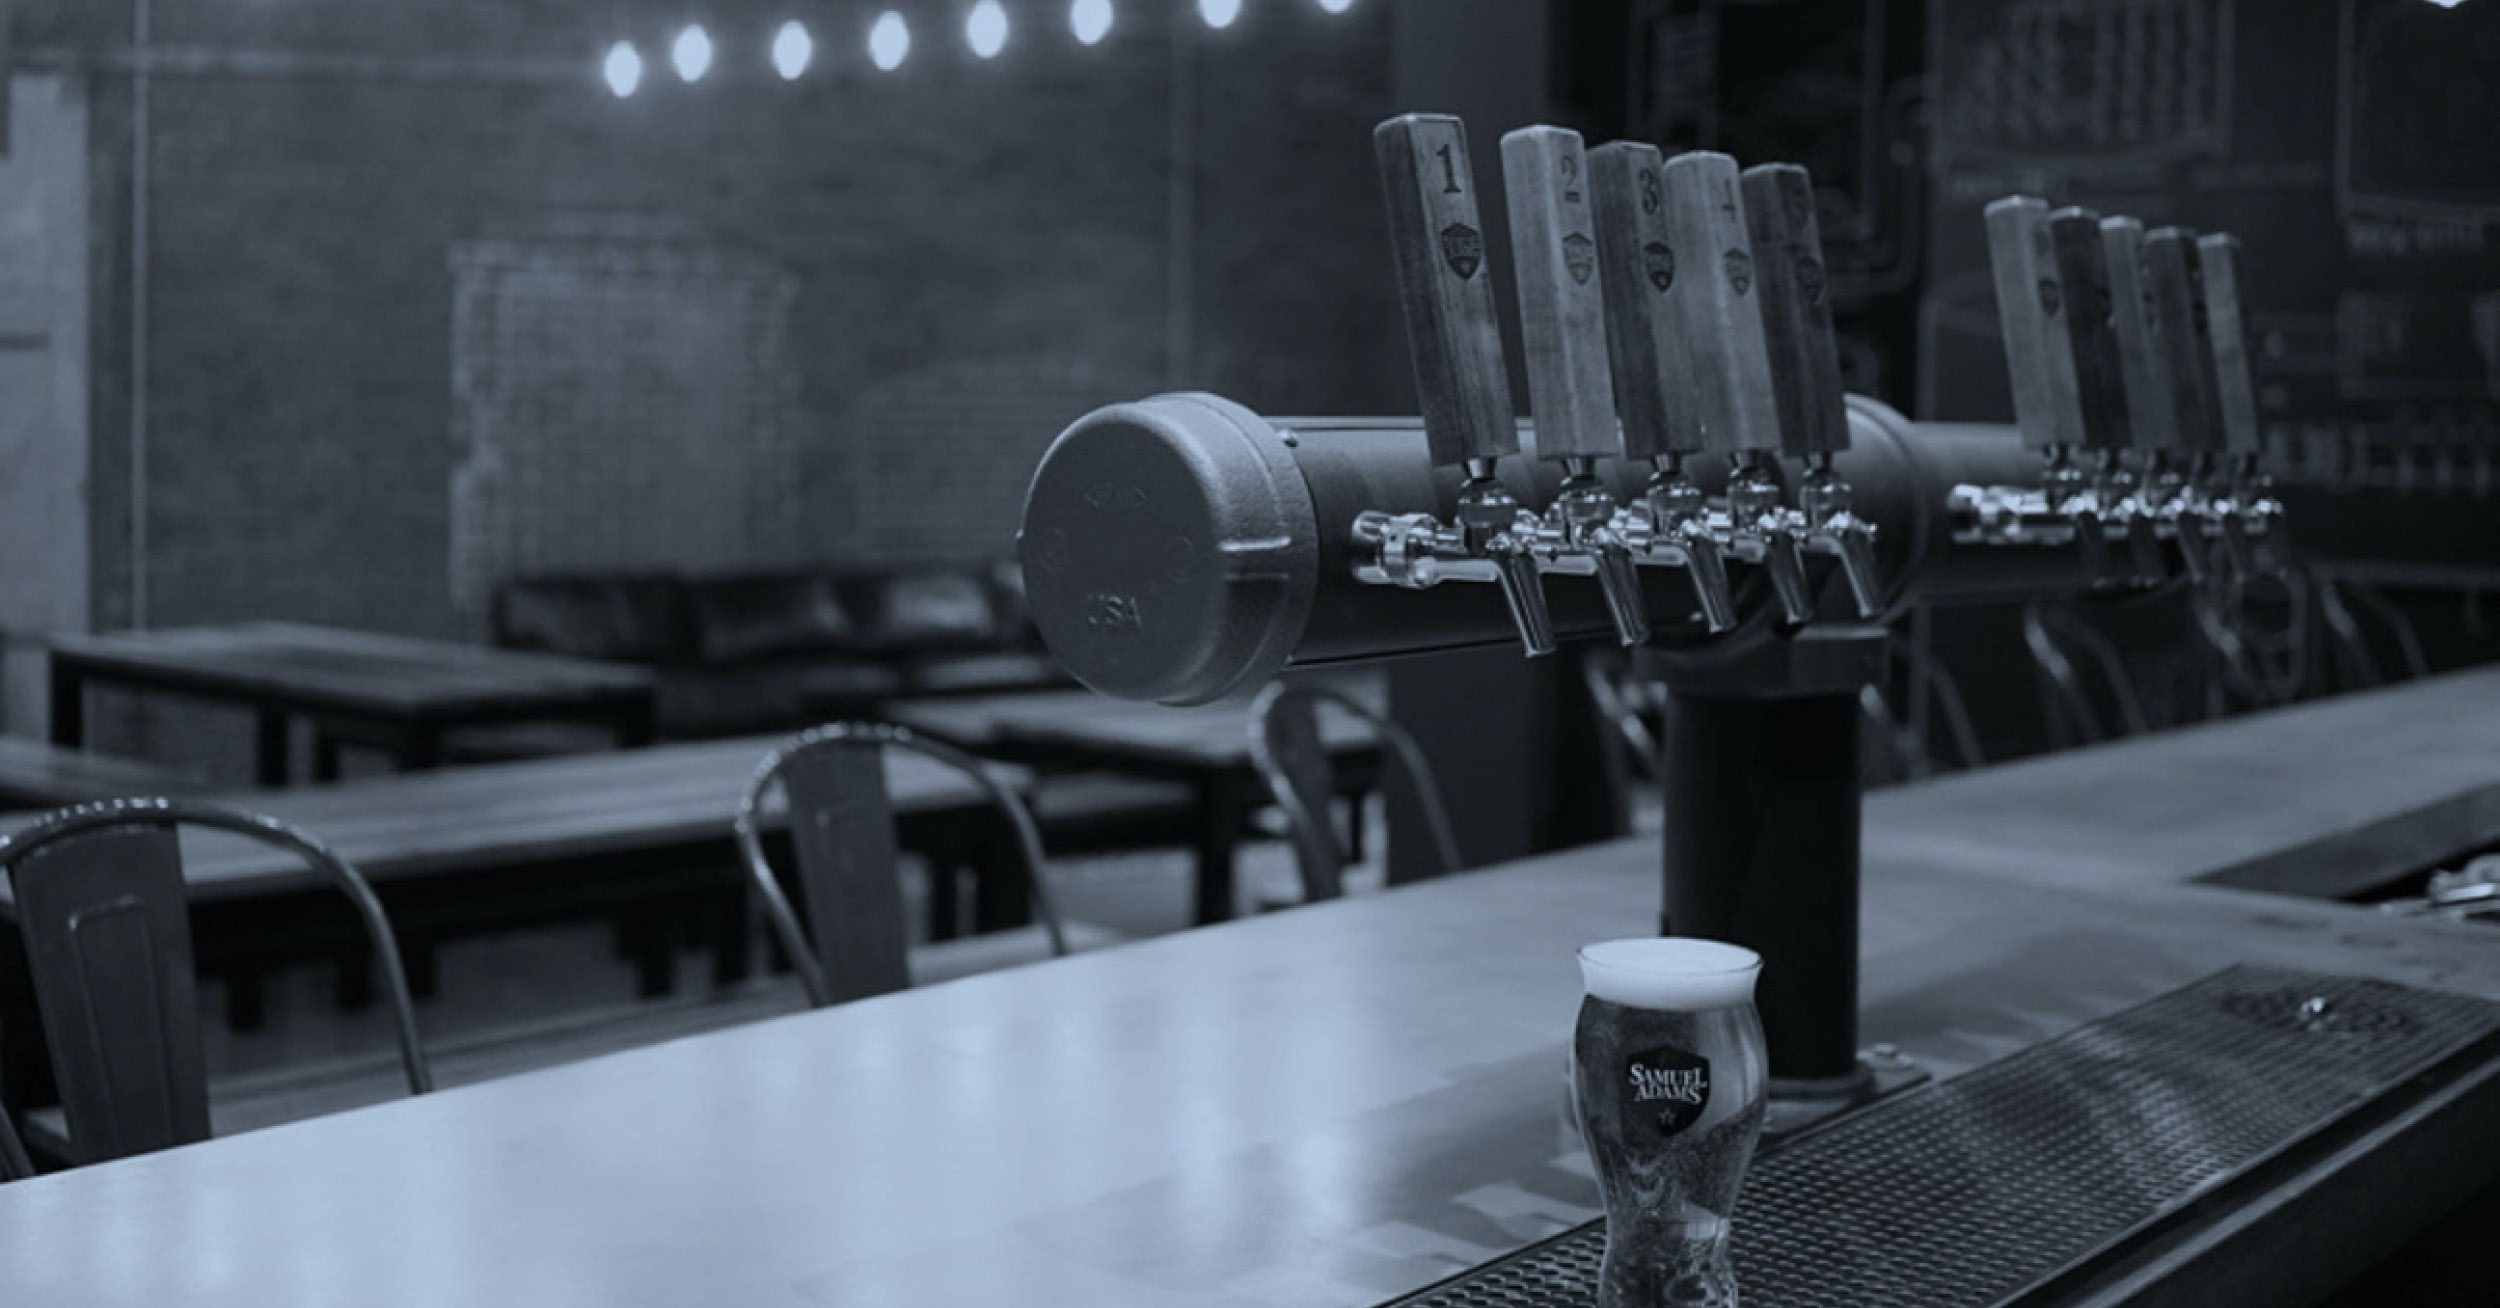 Insights on Tap: How Boston Beer Co. Built an On-Demand Insights Capability